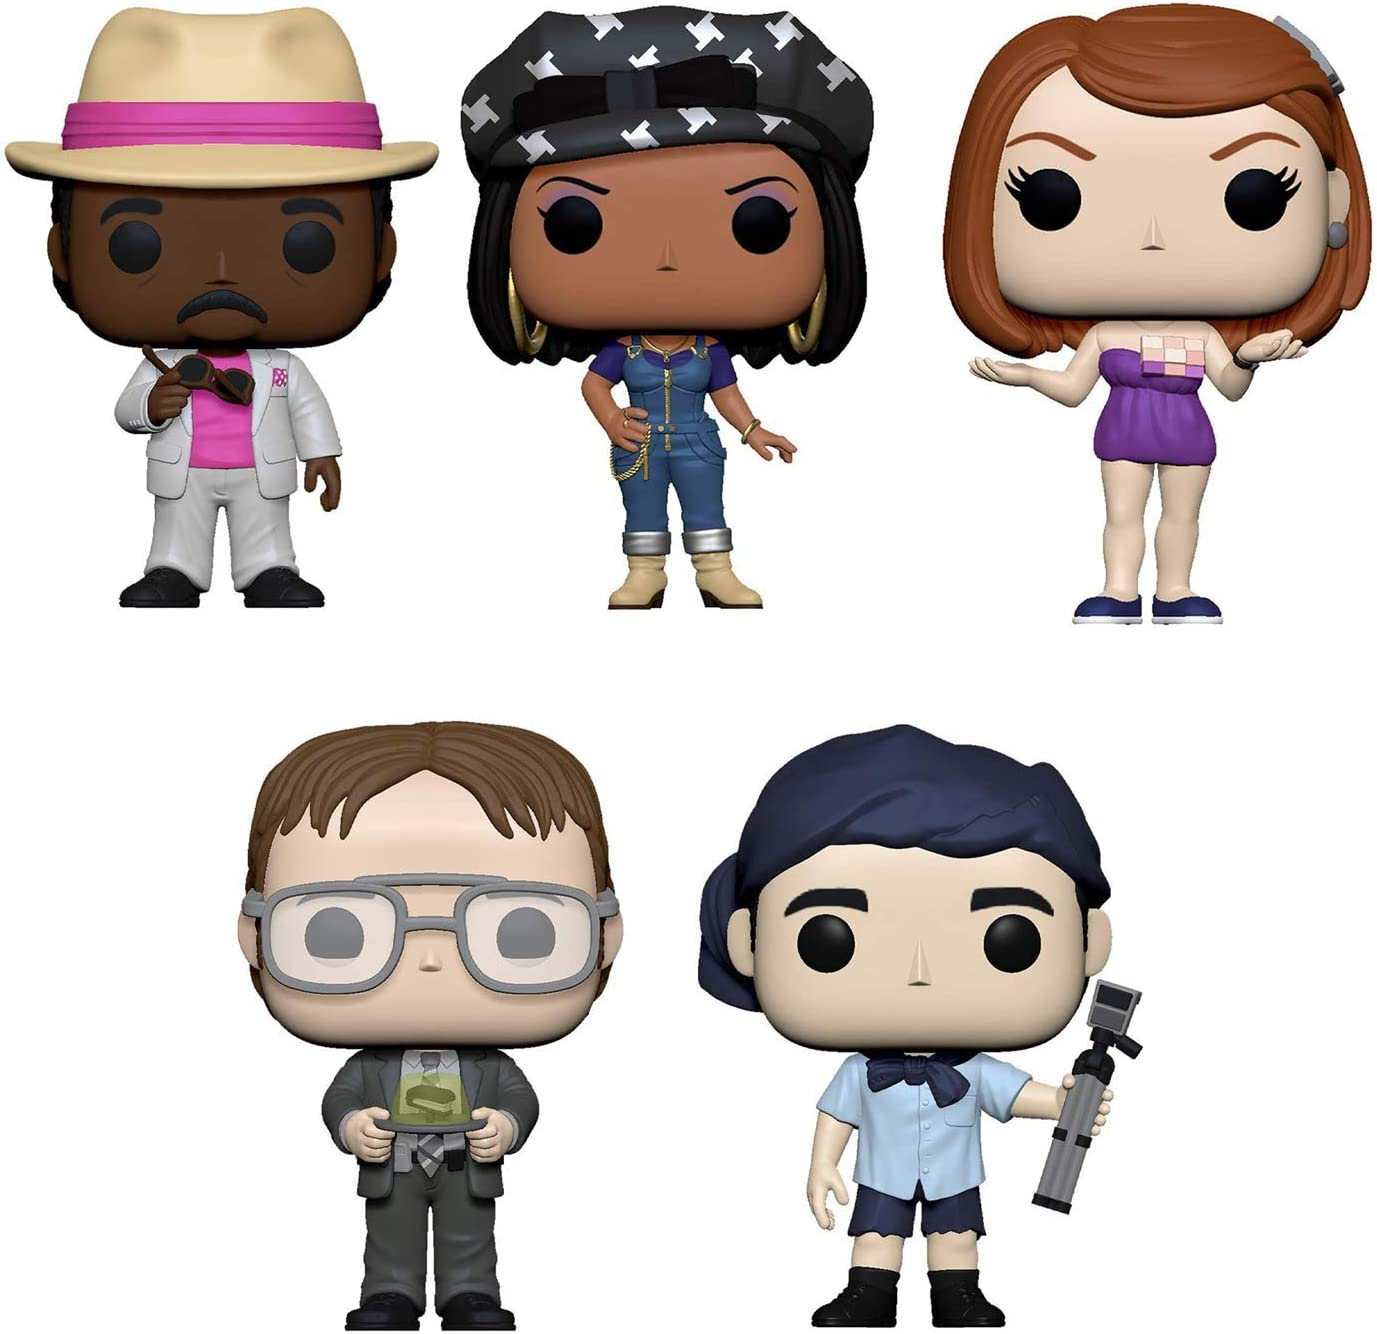 Funko Pop! Bundle of 5: The Office - Florida Stanley, Michael as Survivor, Dwight w/Gelatin Stapler, Casual Friday Meridith and Casual Friday Kelly